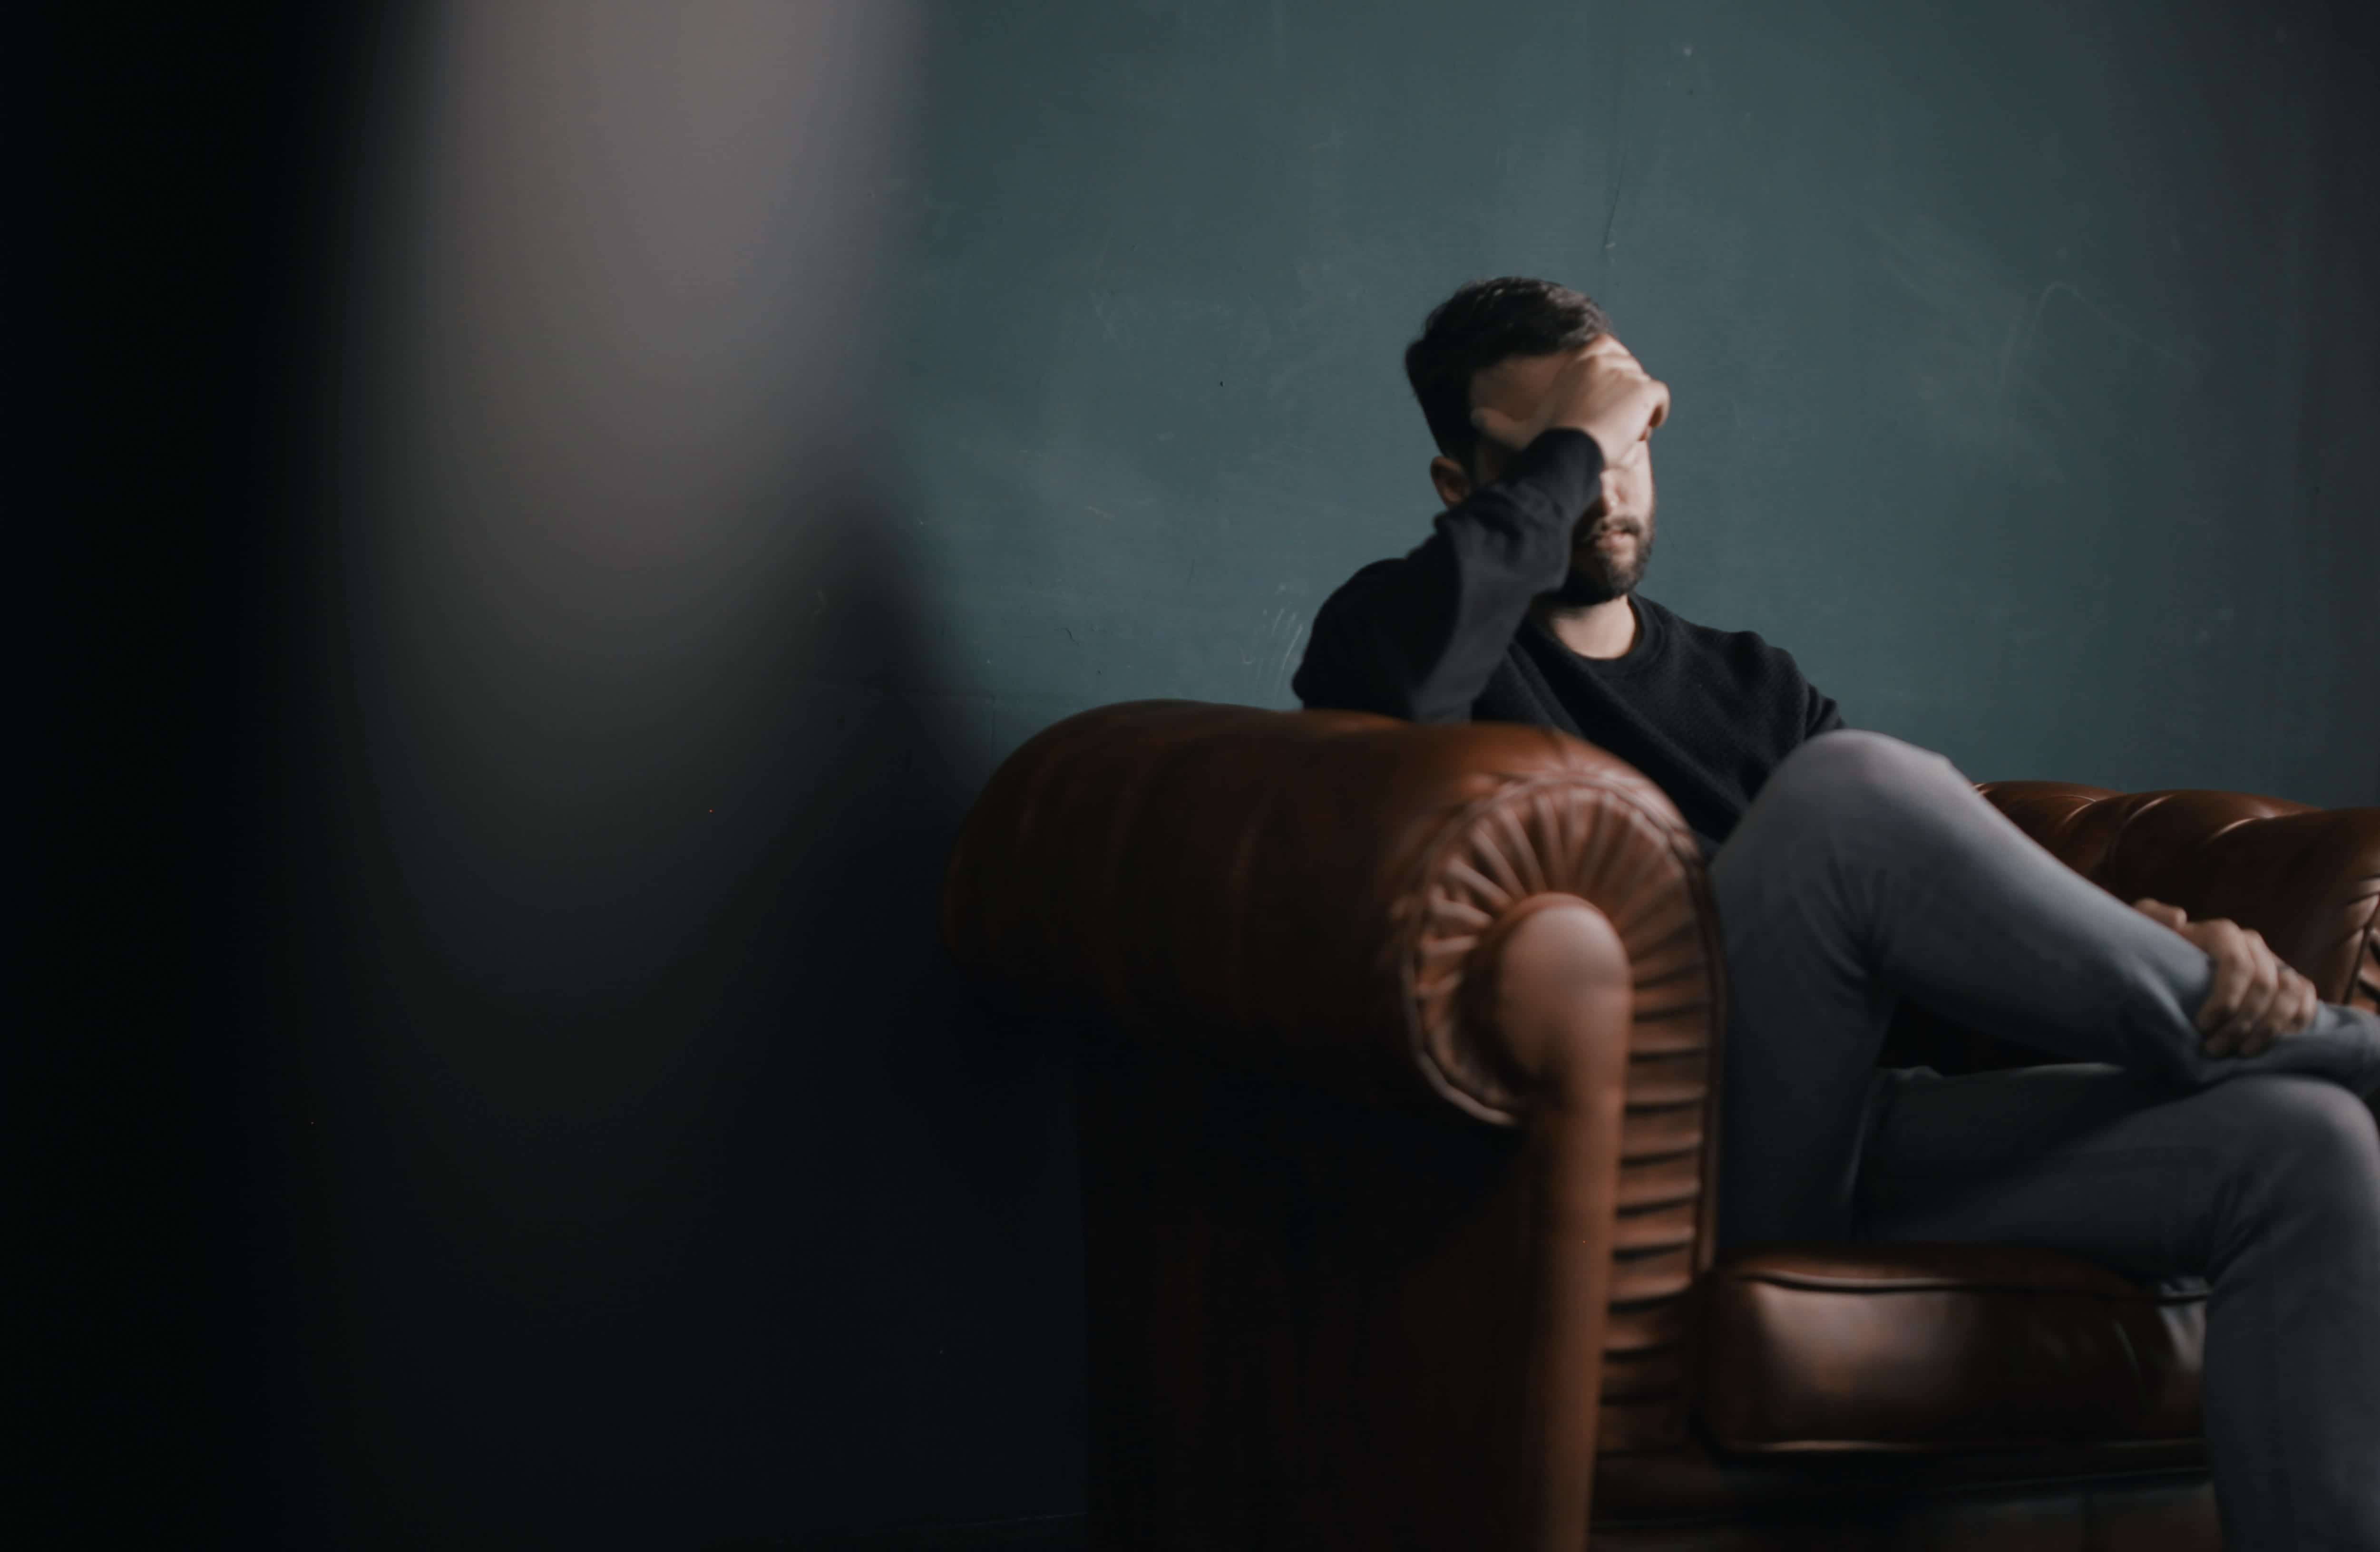 Man sitting on brown leather sofa covering his eyes with one hand; image by Nik Shuliahin, via Unsplash.com.